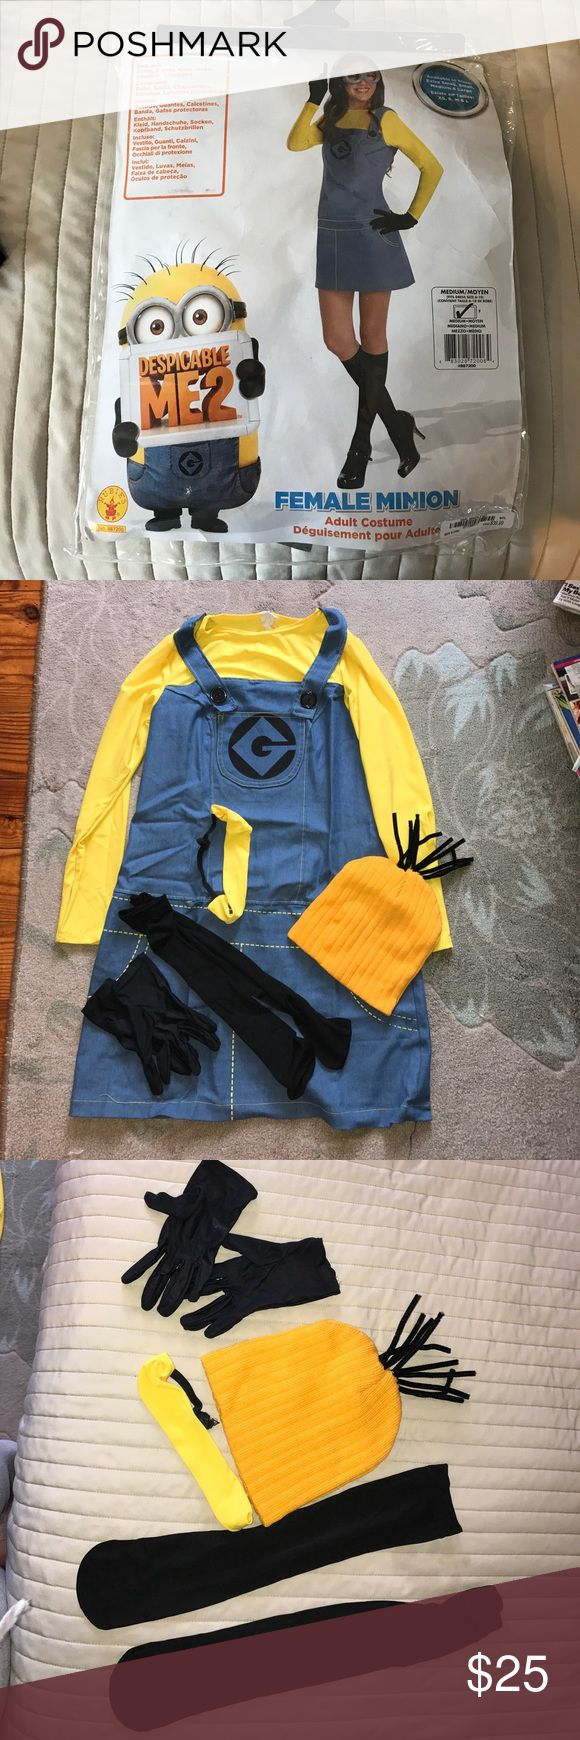 Adult Minion Costume 6-10 Used once for about an hour. Includes all accessories as well as hat with hair coming out that I made myself. True to size. Other